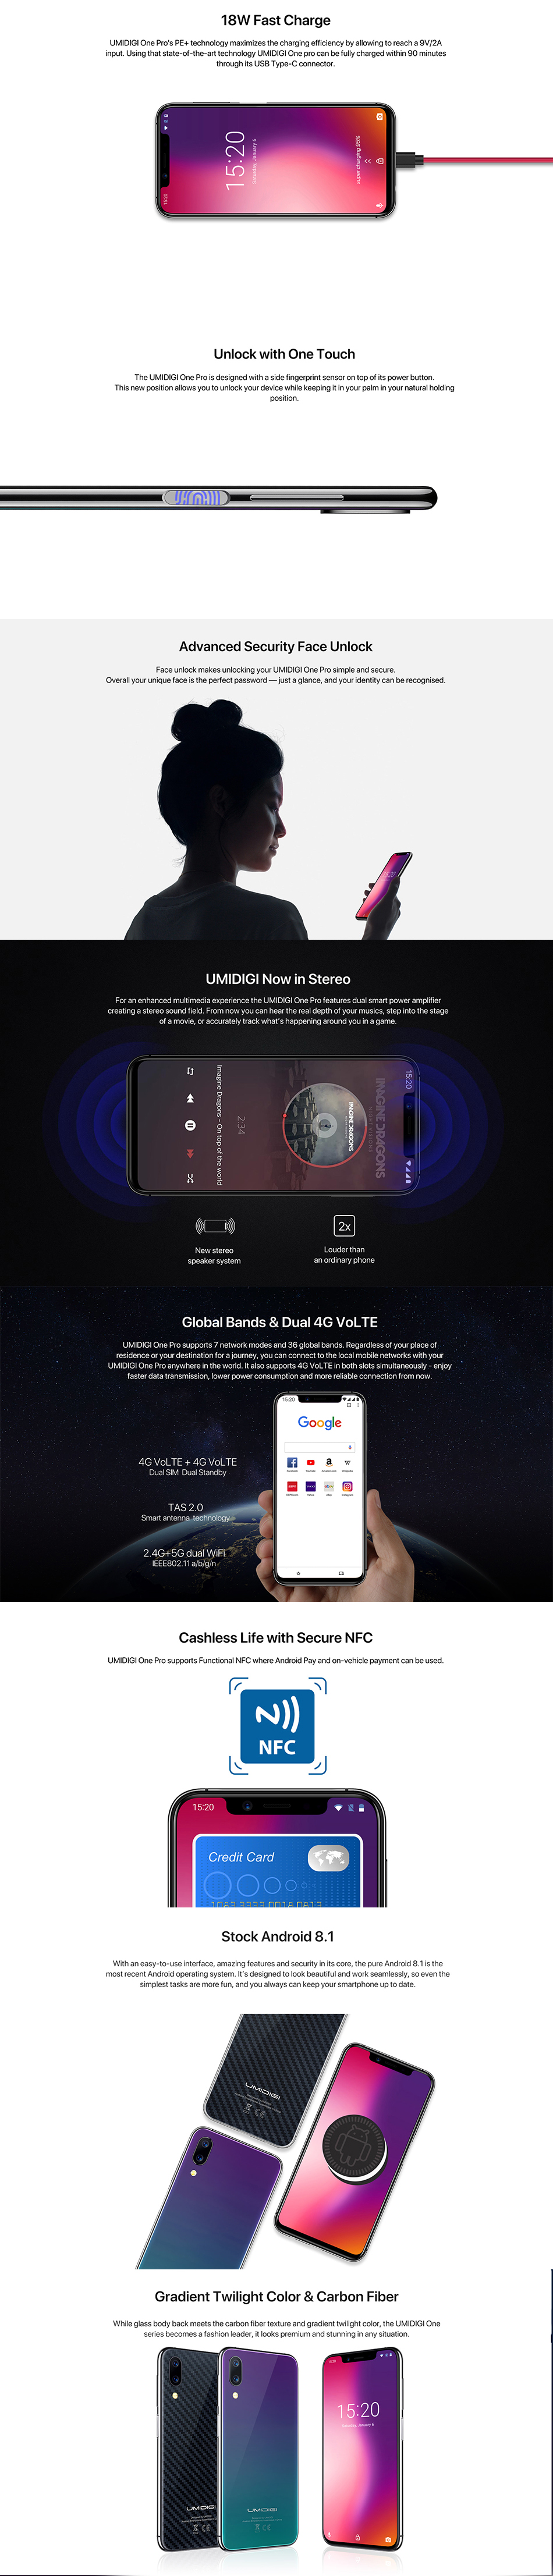 UMIDIGI One Pro 5.9 Inch 15W Wireles Charge Global LTE Band 4GB RAM 64GB ROM Helio P23 4G Smartphone